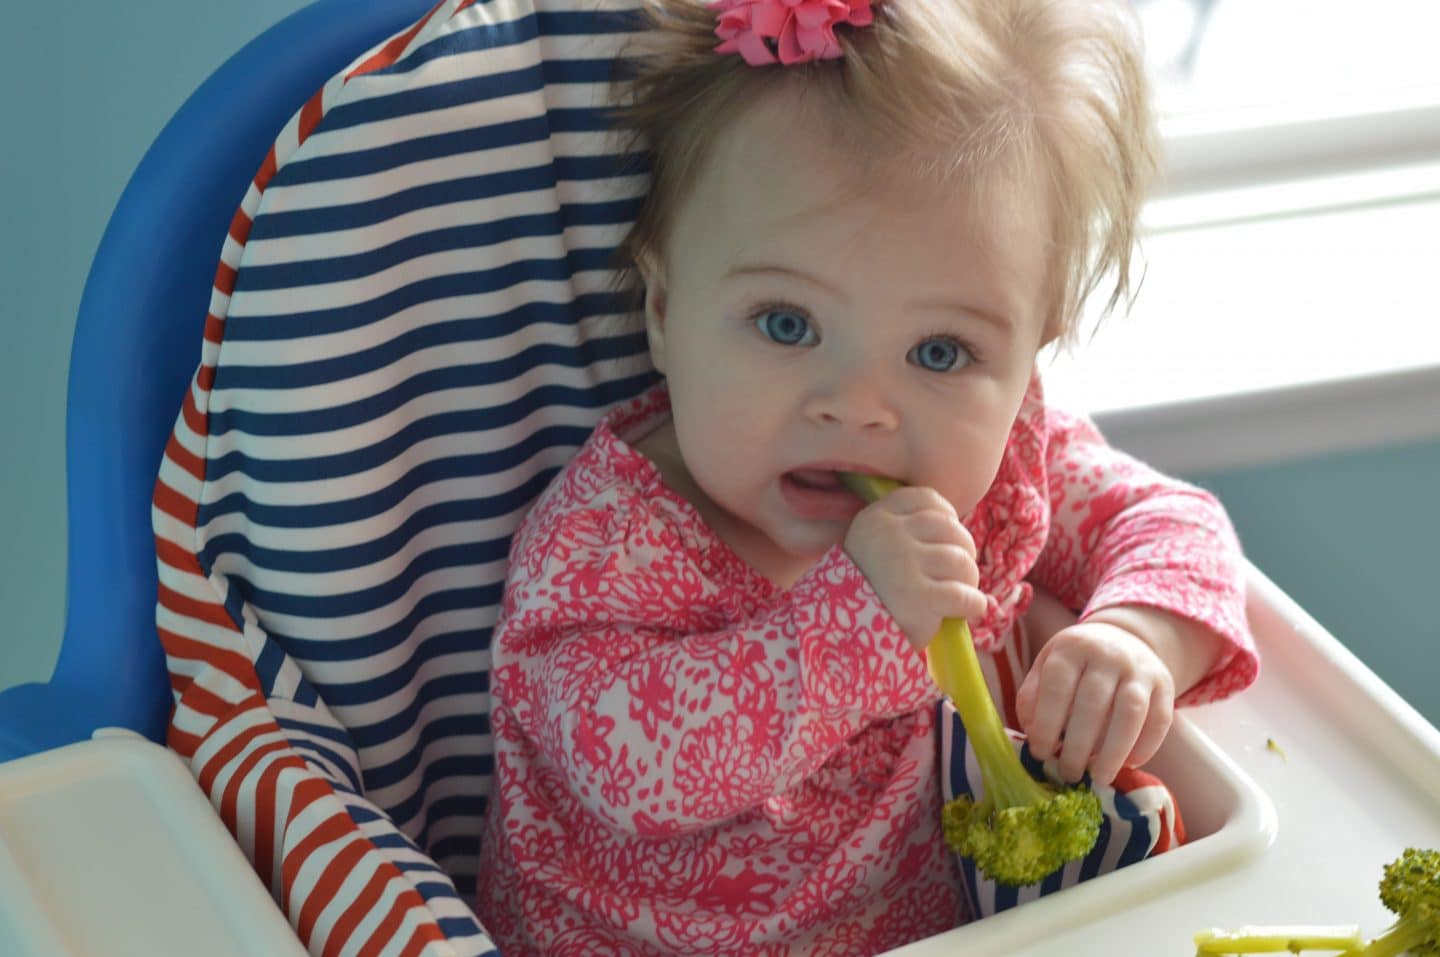 simple guide to baby led weaning - third baby enjoying food in high chair